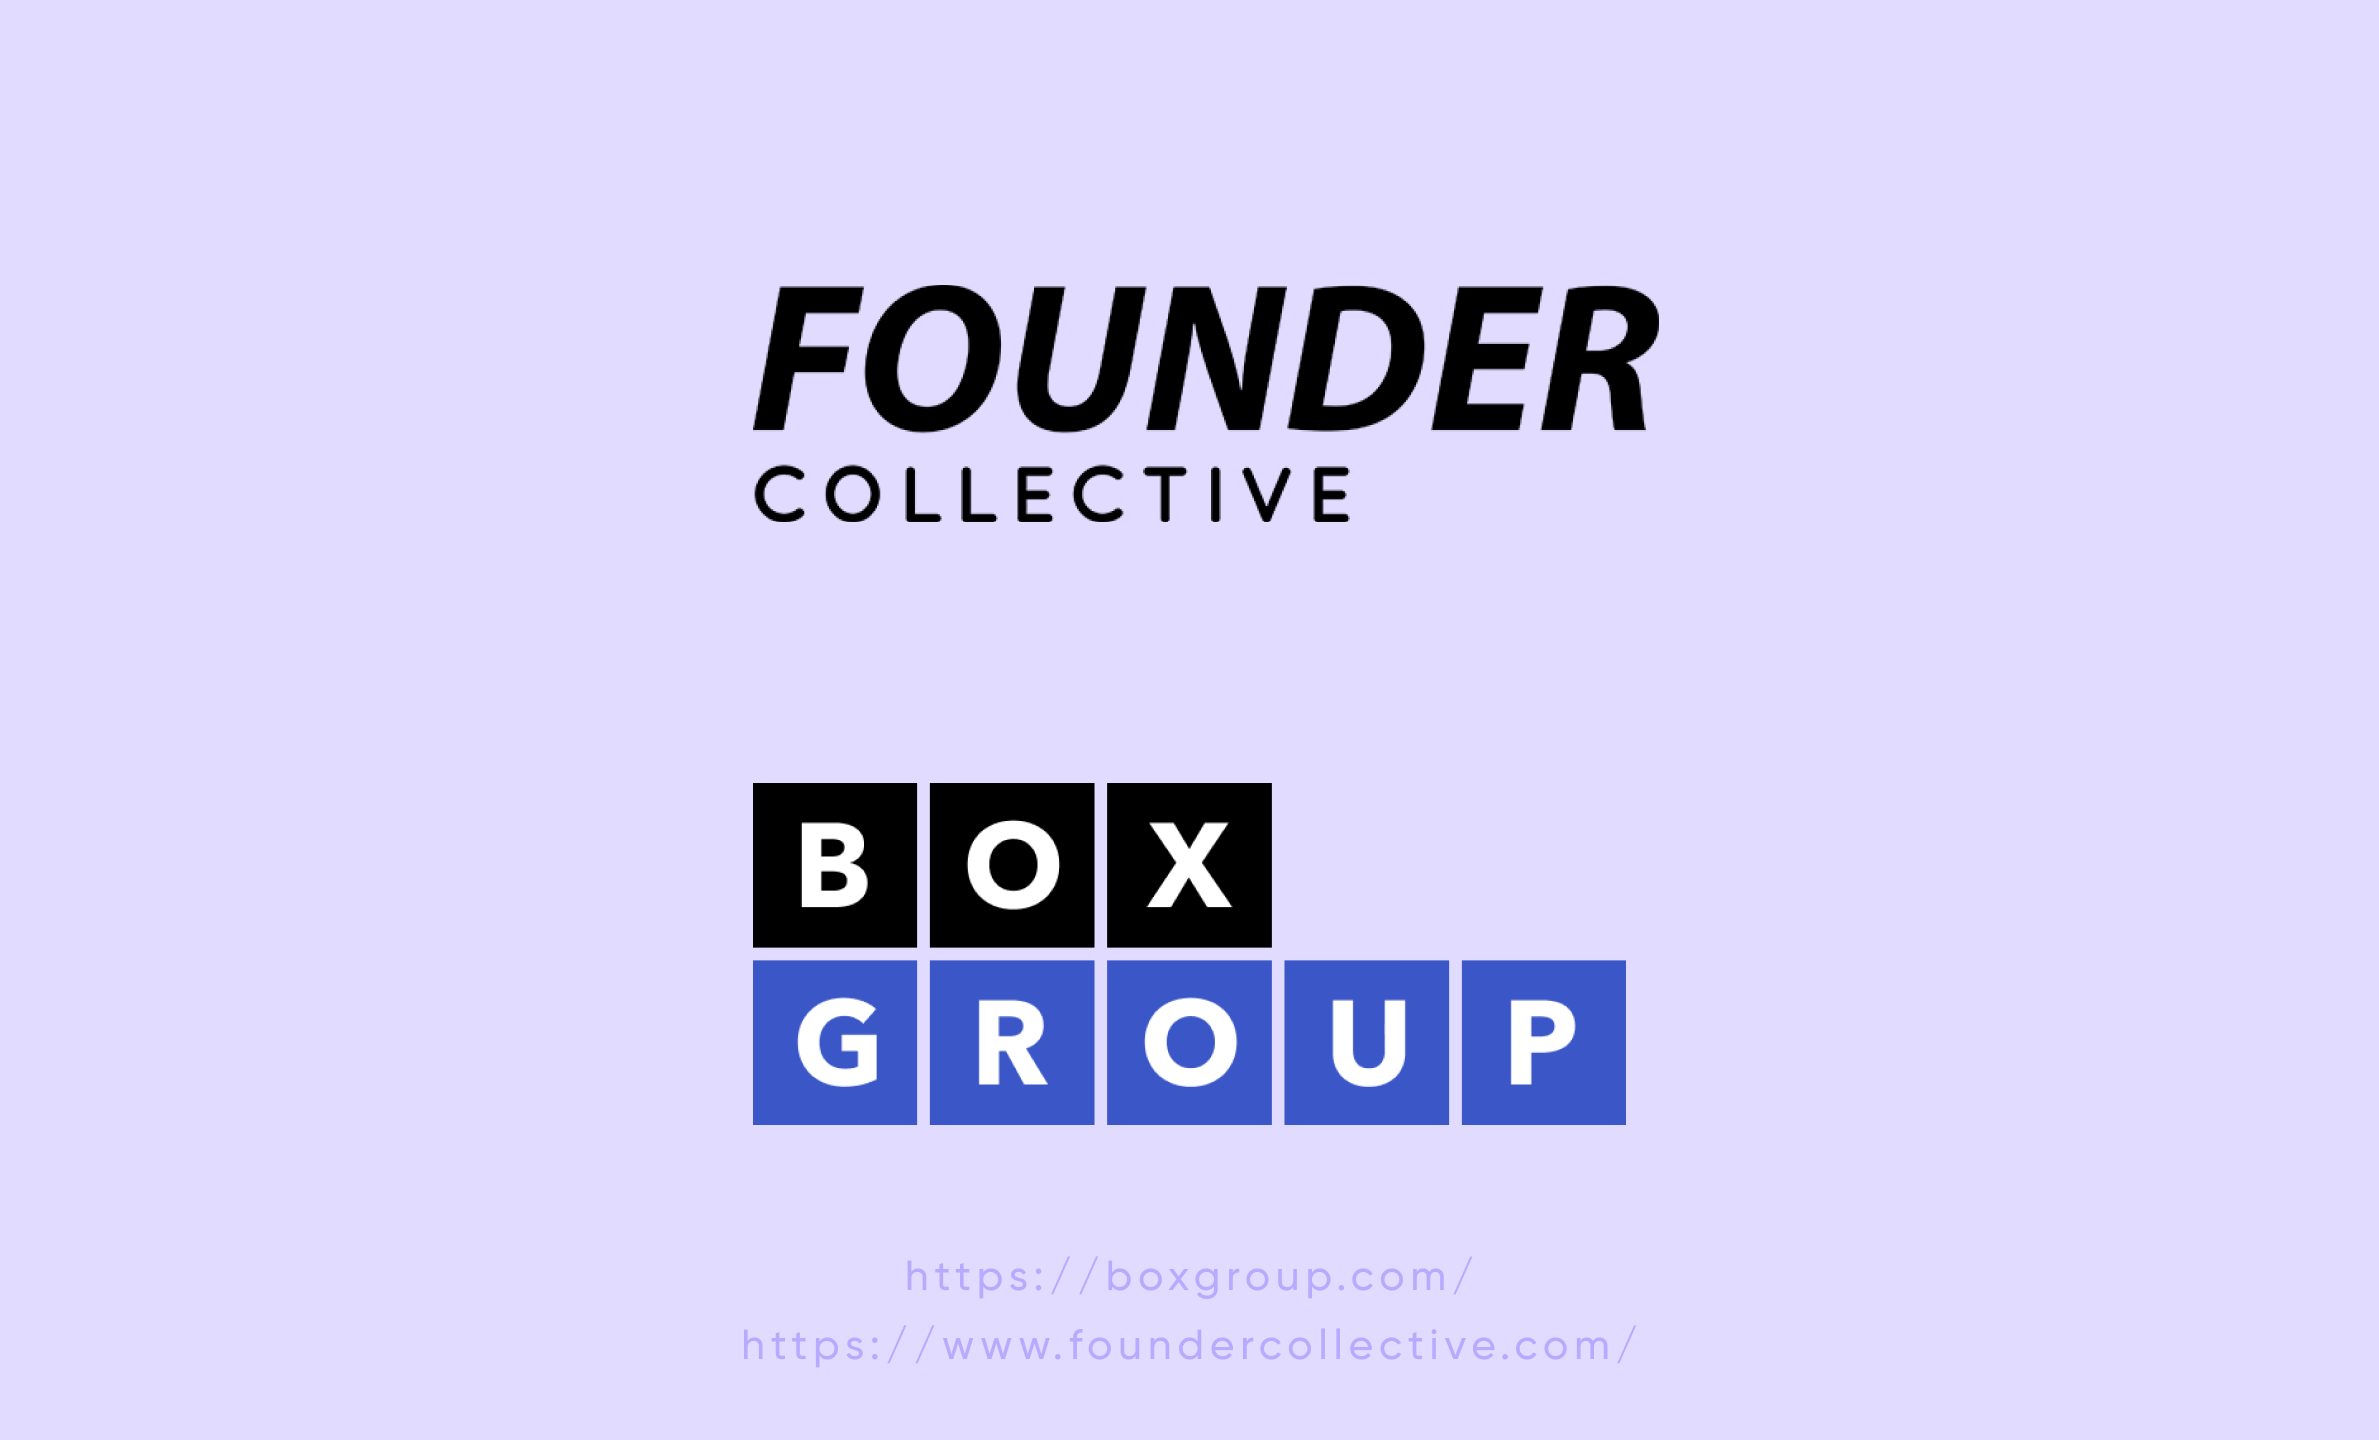 nyc angel investors — BoxGroup & Founder Collective